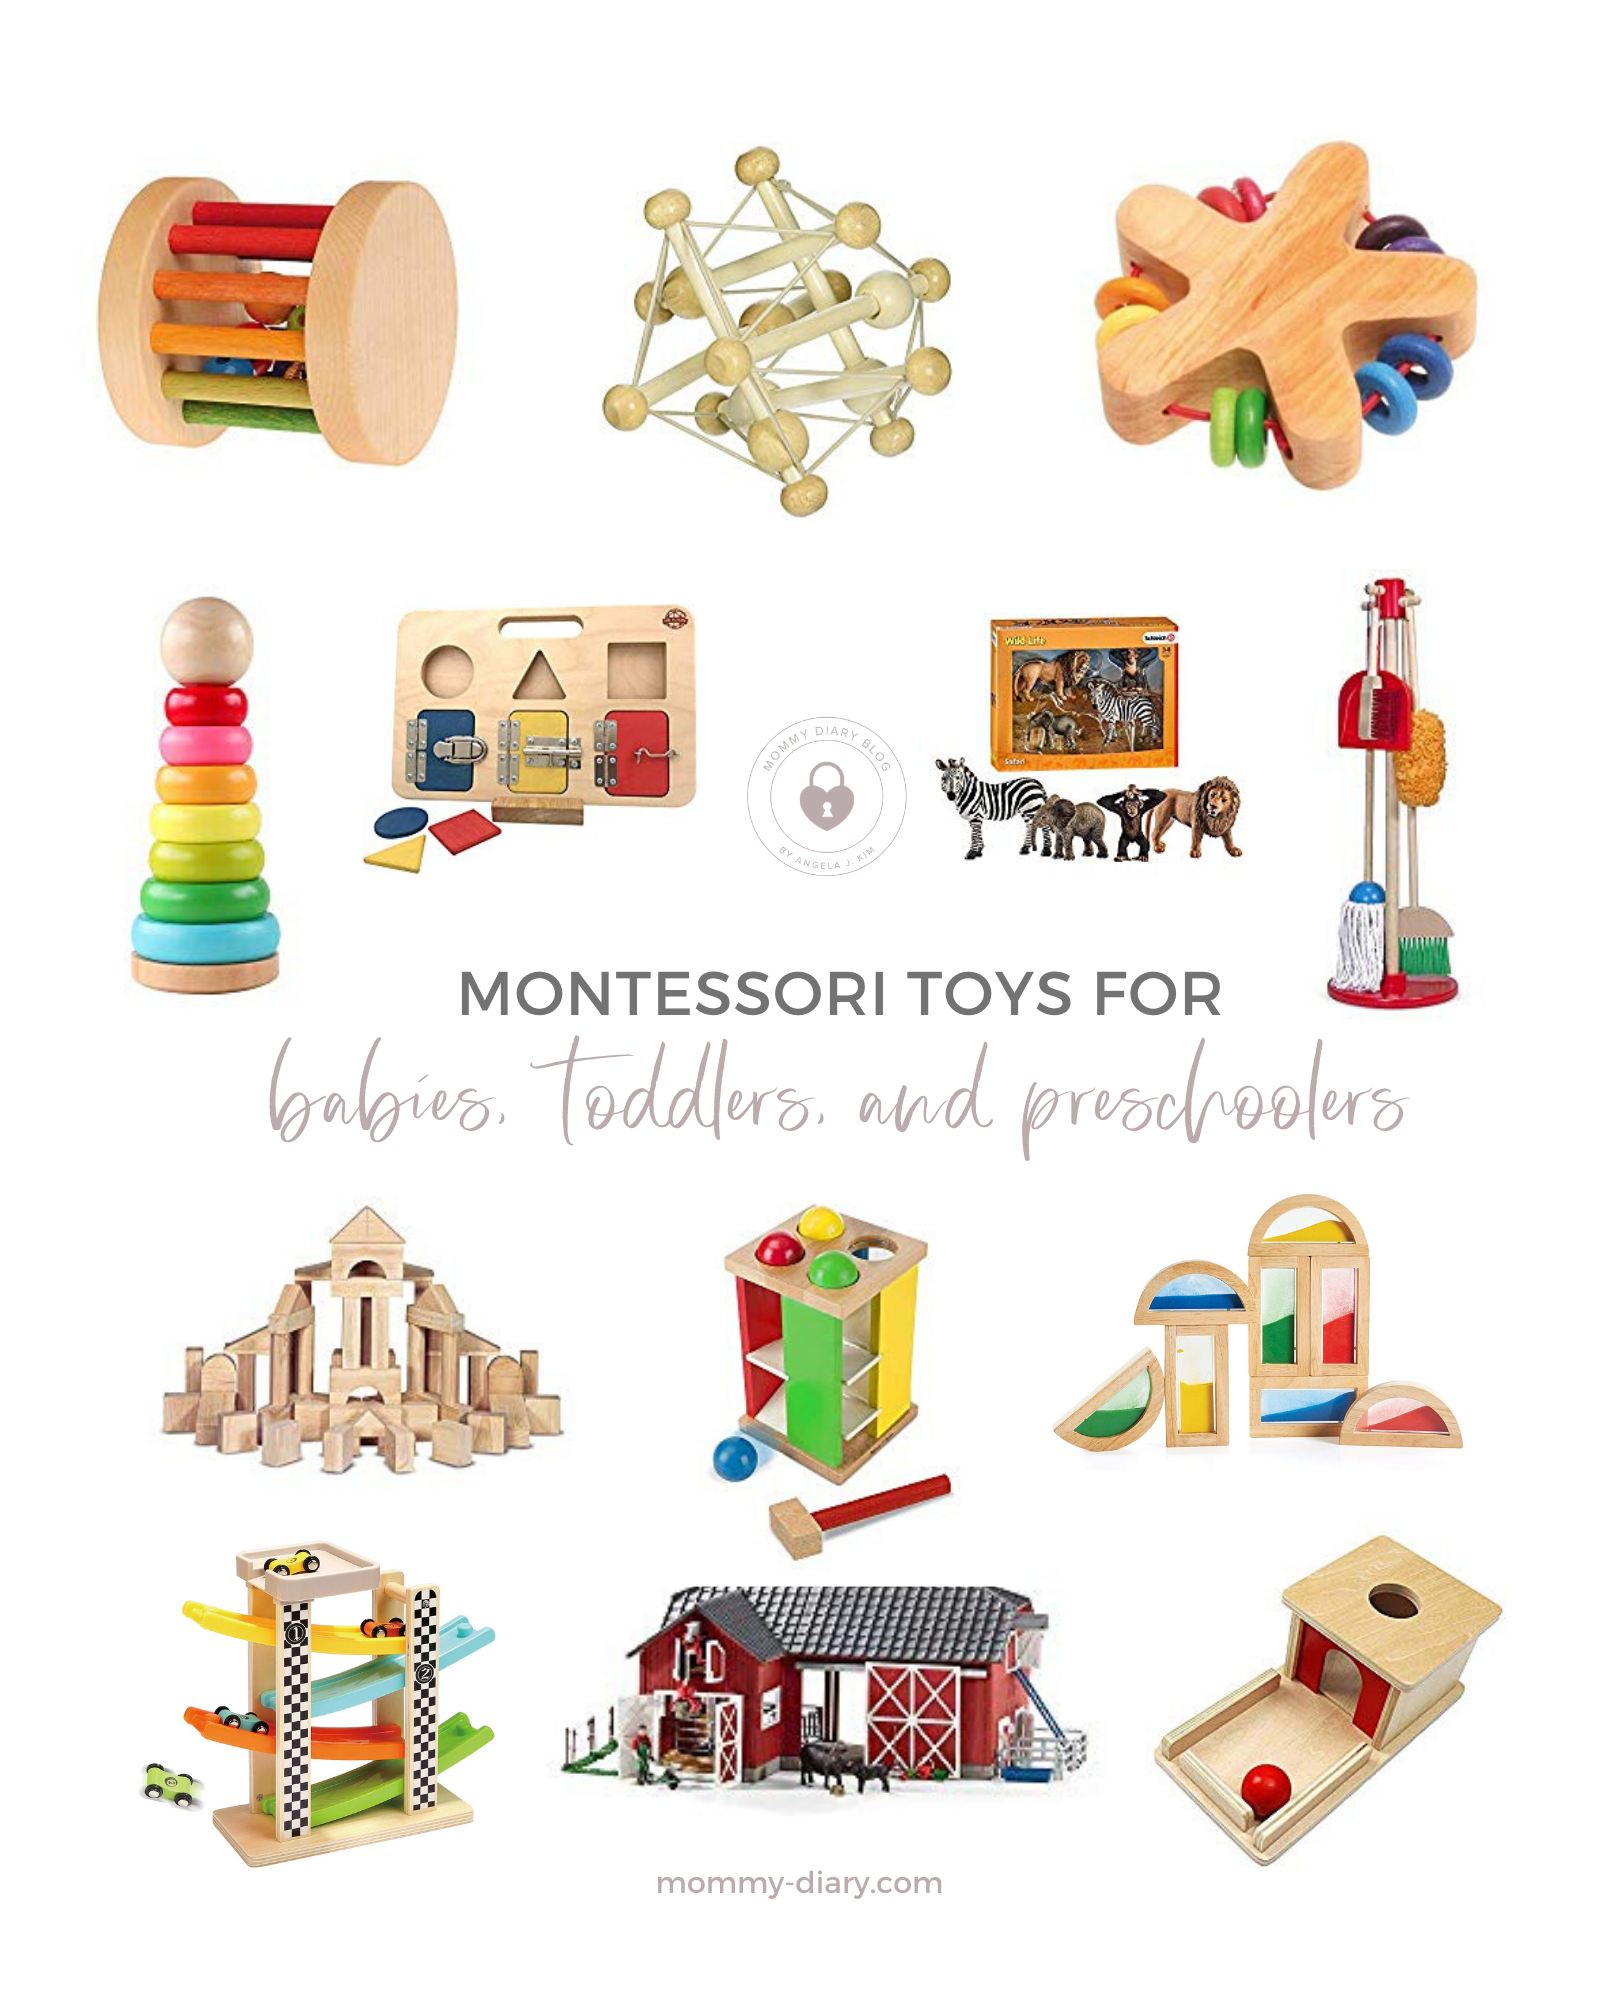 montessori-toys-for-baby-kids-preschool